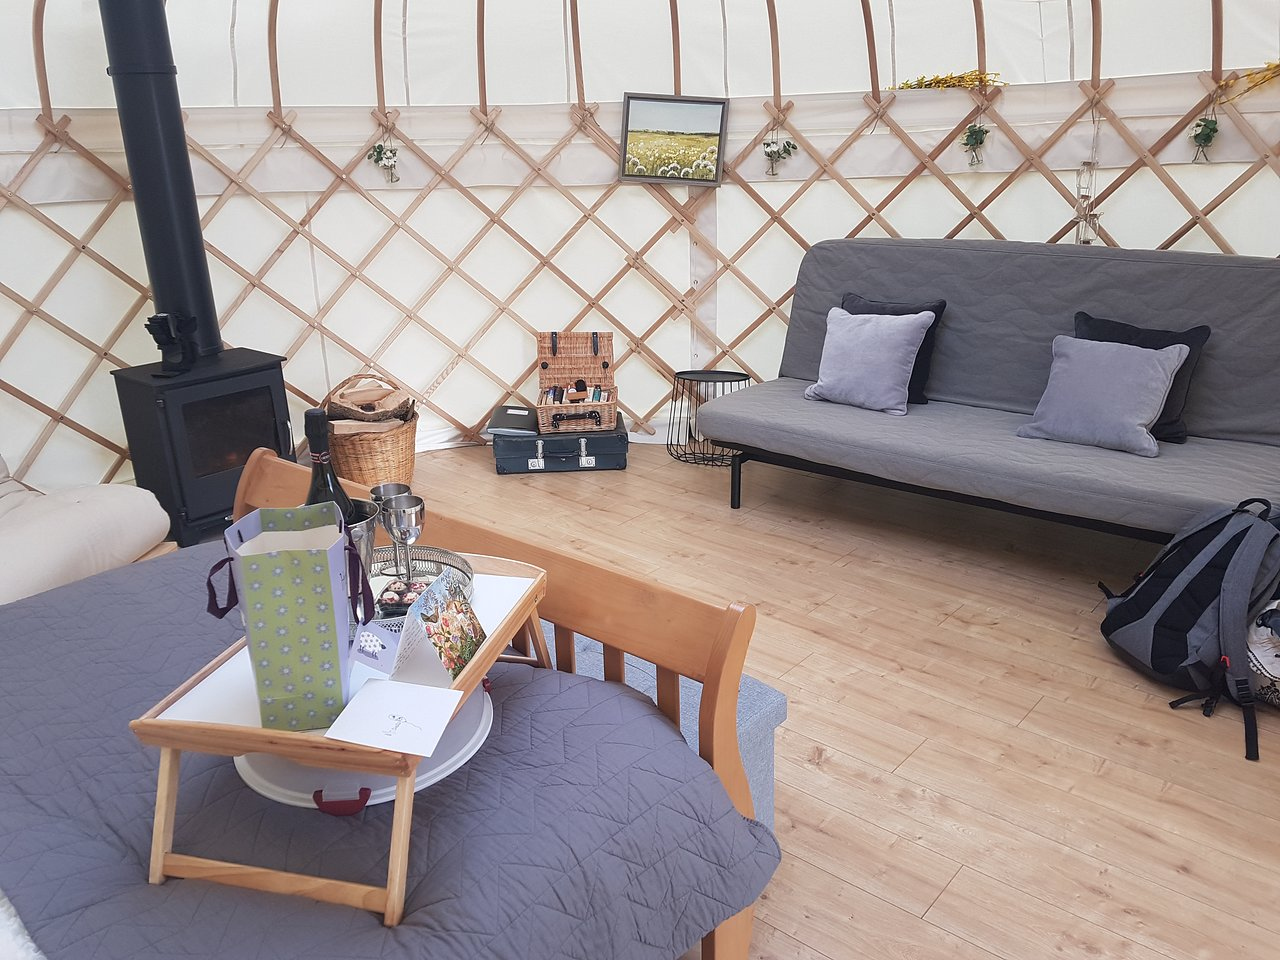 Shropshire hills glamping broome updated 2019 campground reviews photos tripadvisor